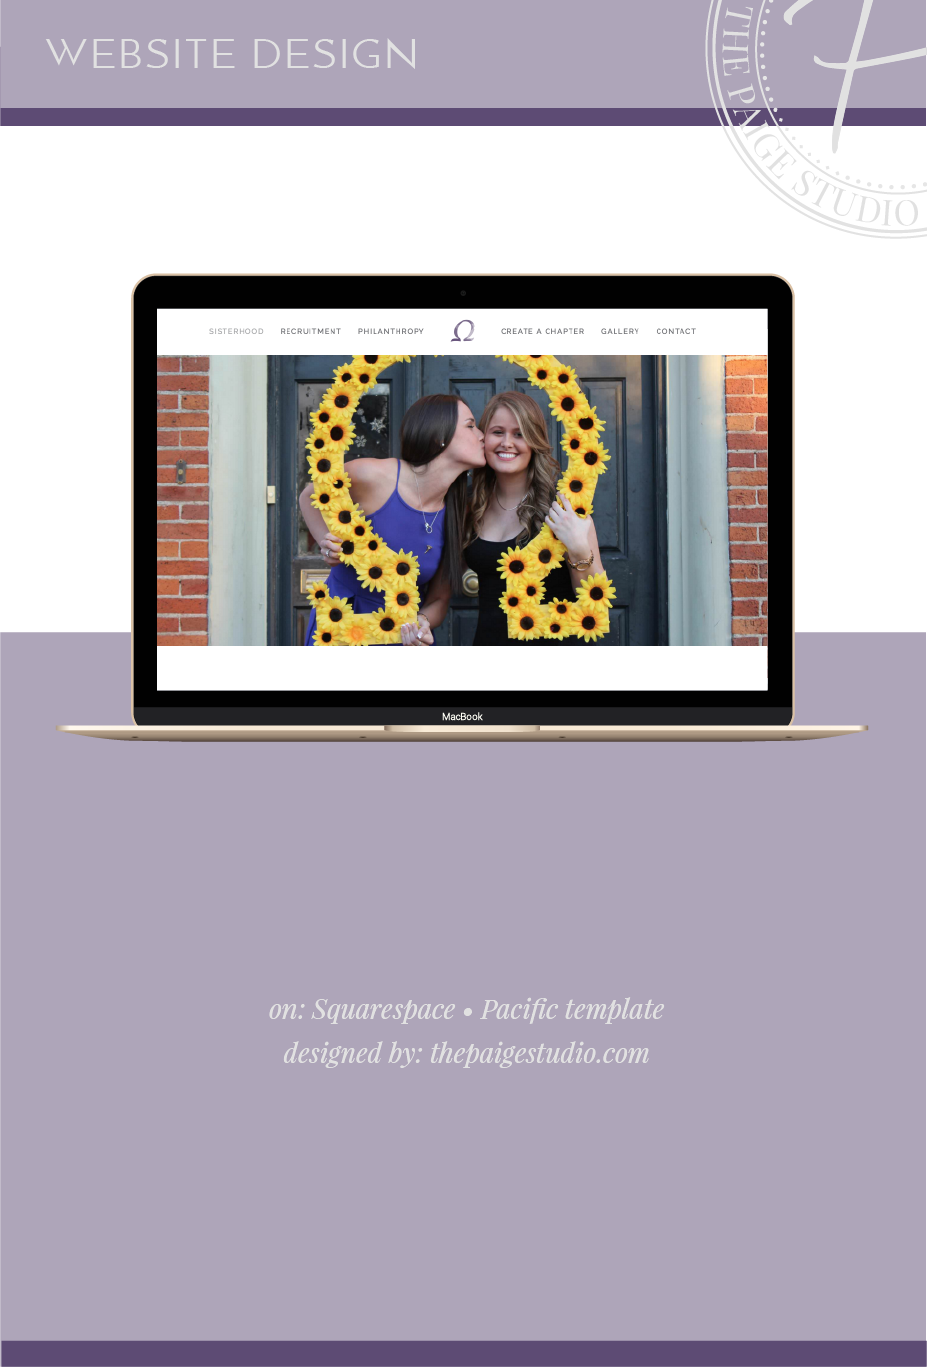 Sorority+website+design+project+with+Squarespace's+Pacific+template.png